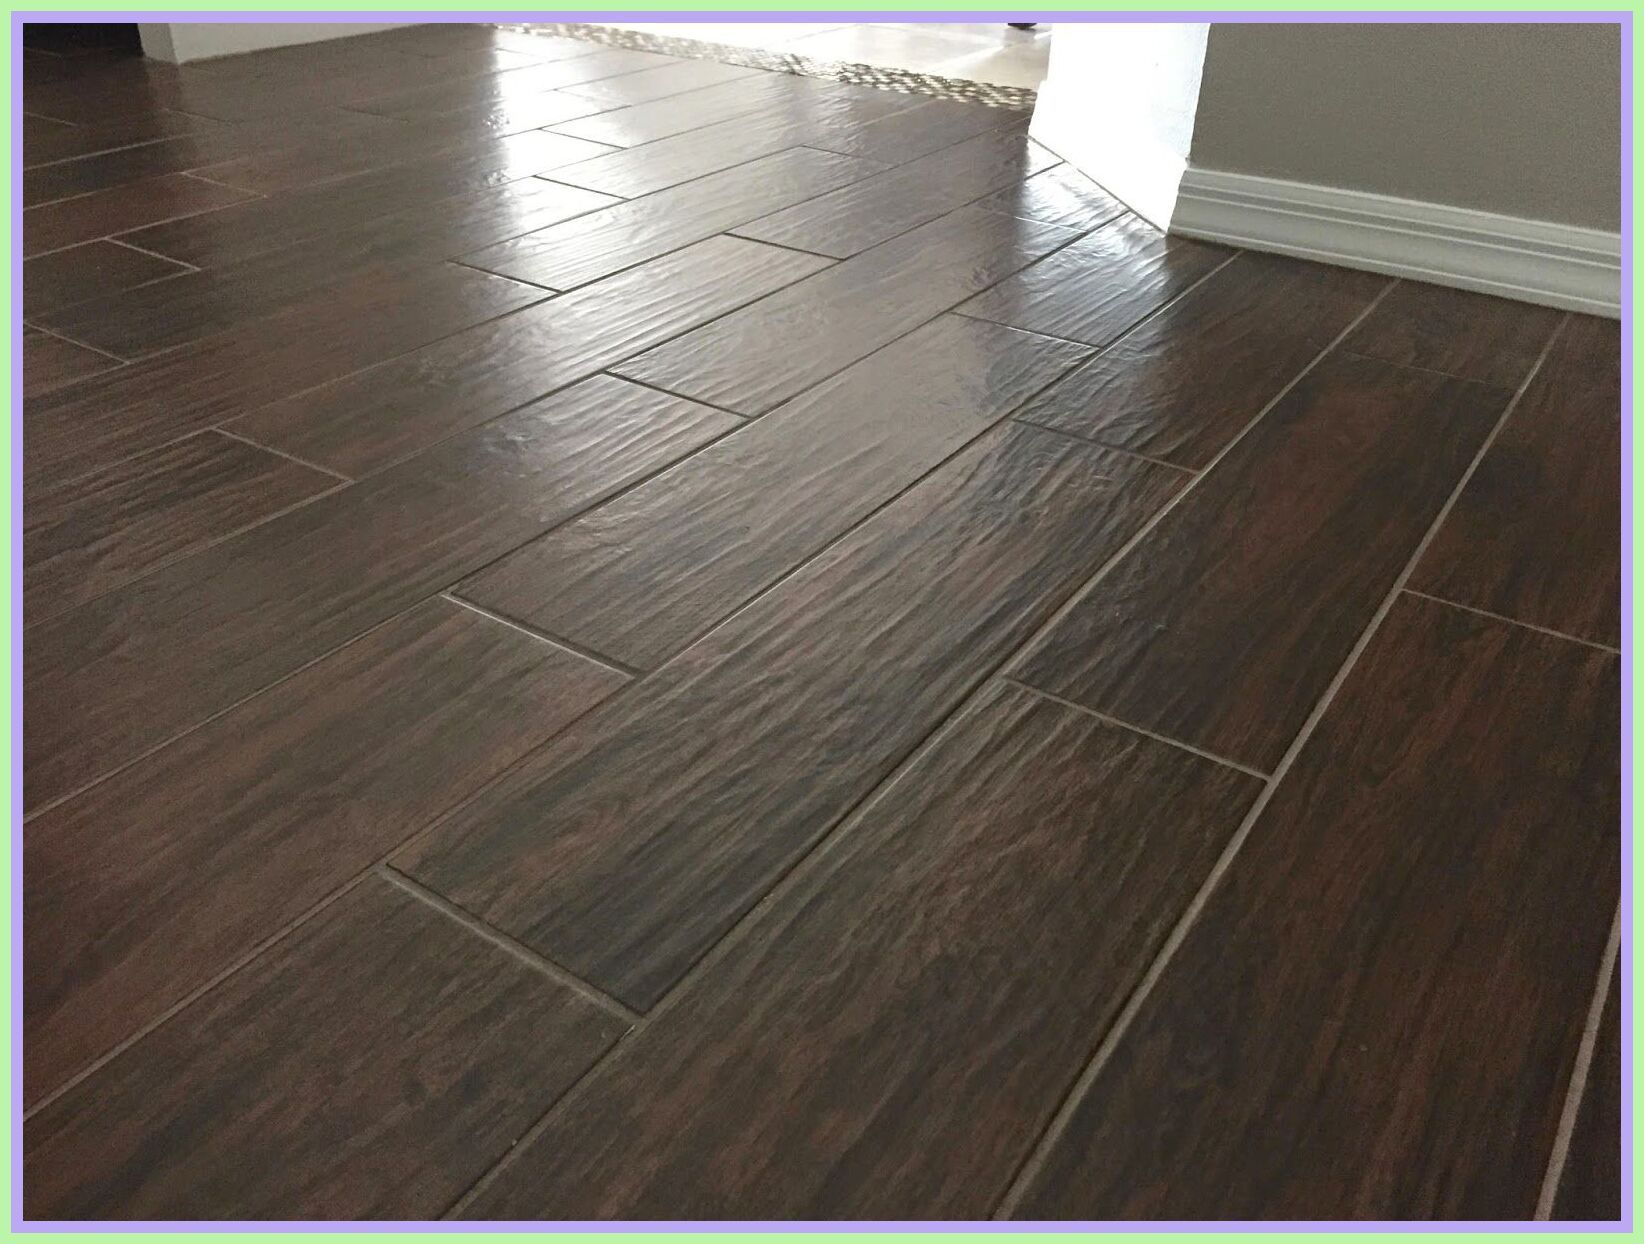 77 Reference Of Ceramic Floor Tile Wood Tile 12x12 In 2020 Wood Look Tile Floor Wood Look Tile Ceramic Floor